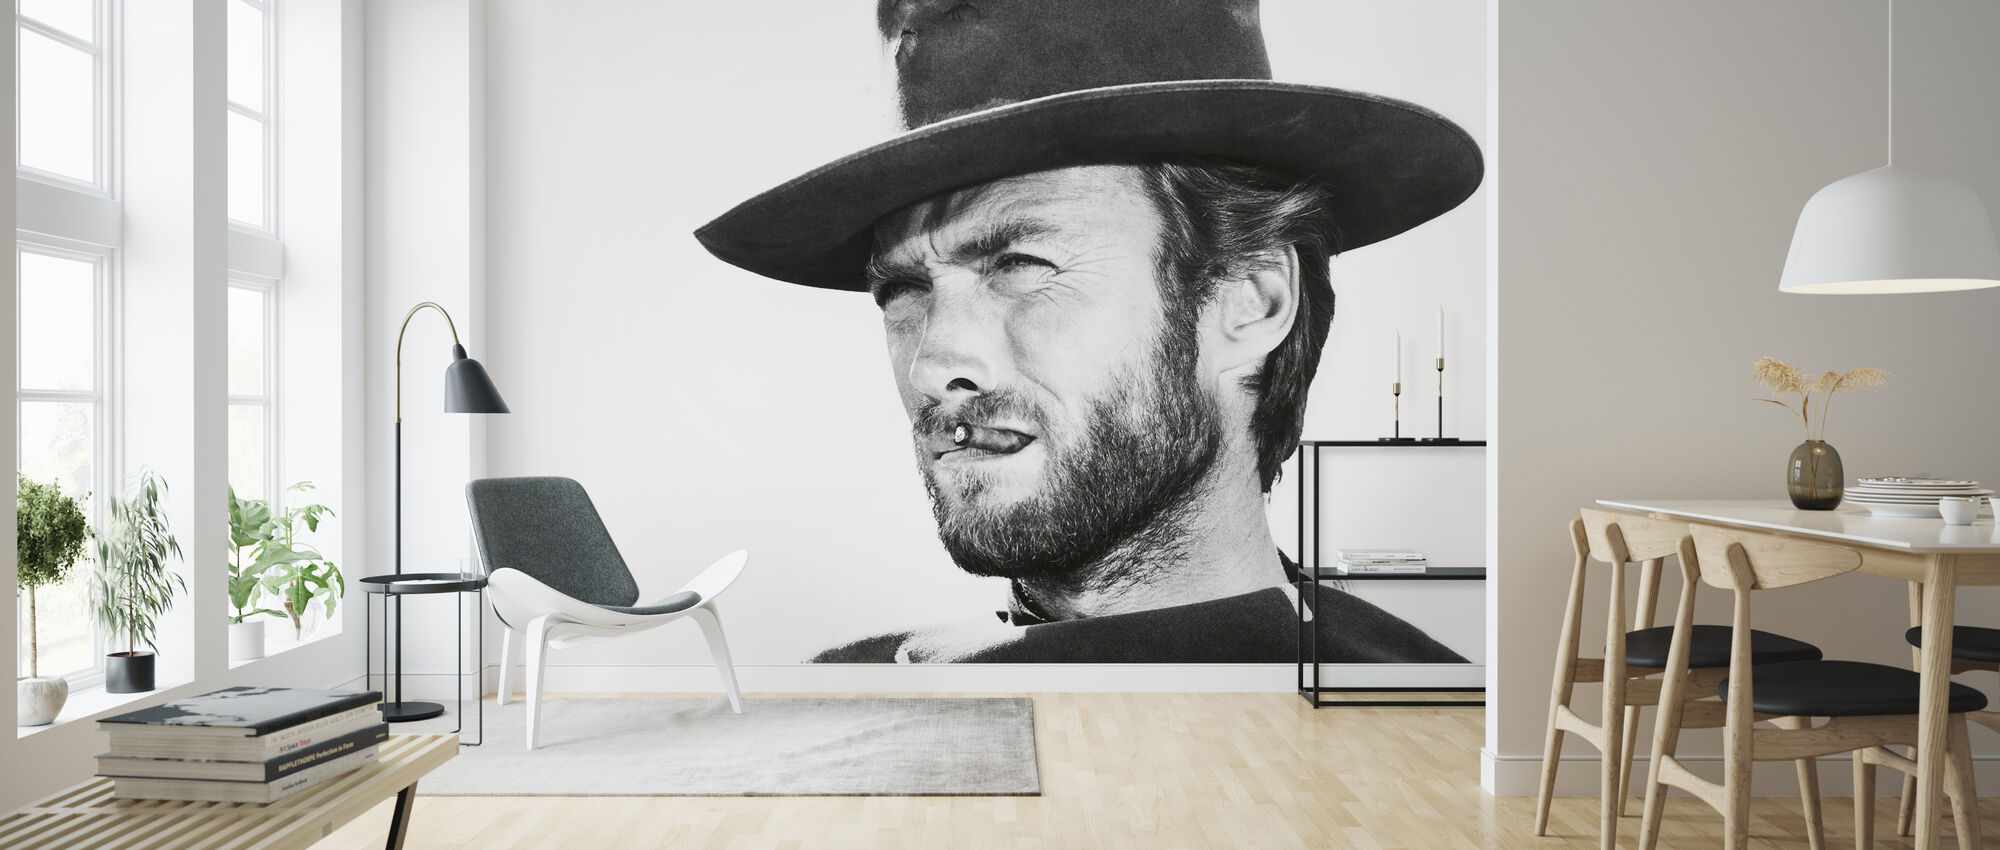 Clint Eastwood in Good the Bad and the Ugly - Wallpaper - Living Room